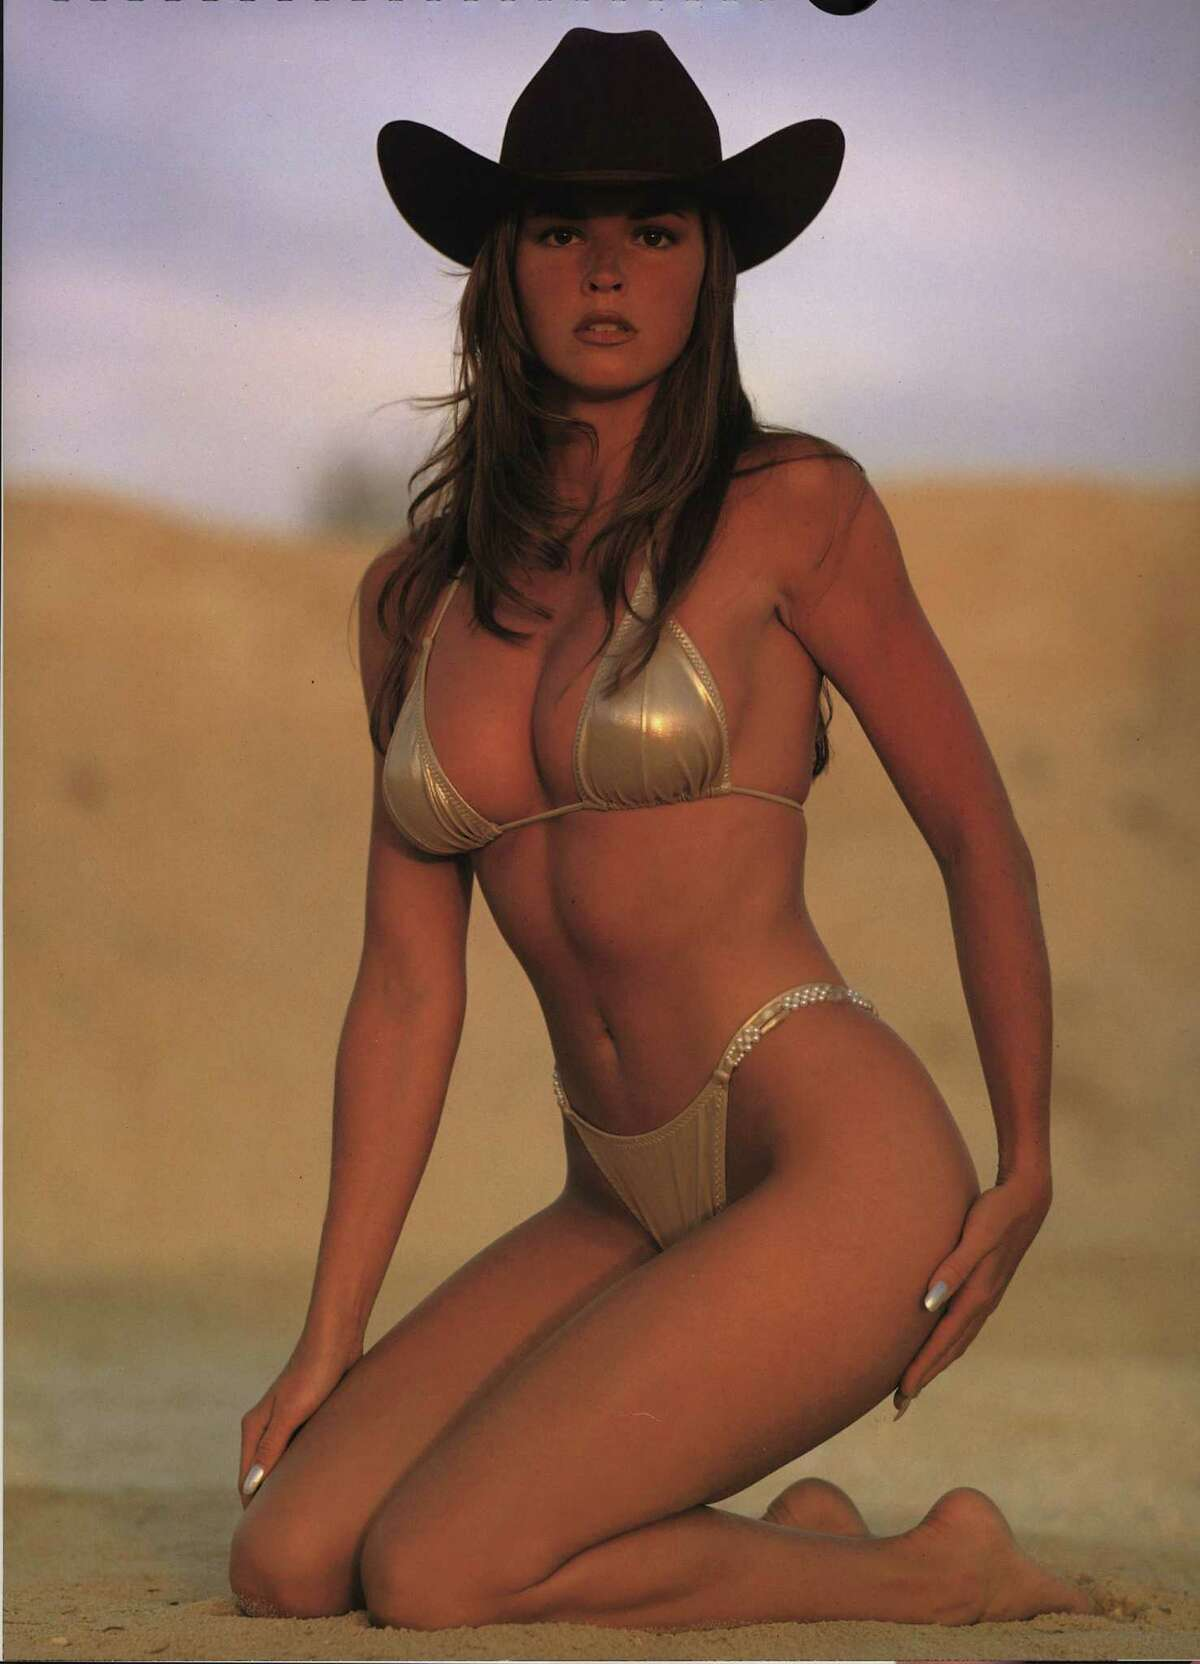 Shannon Dragoo, contestant in Big Brother 2 (2001)